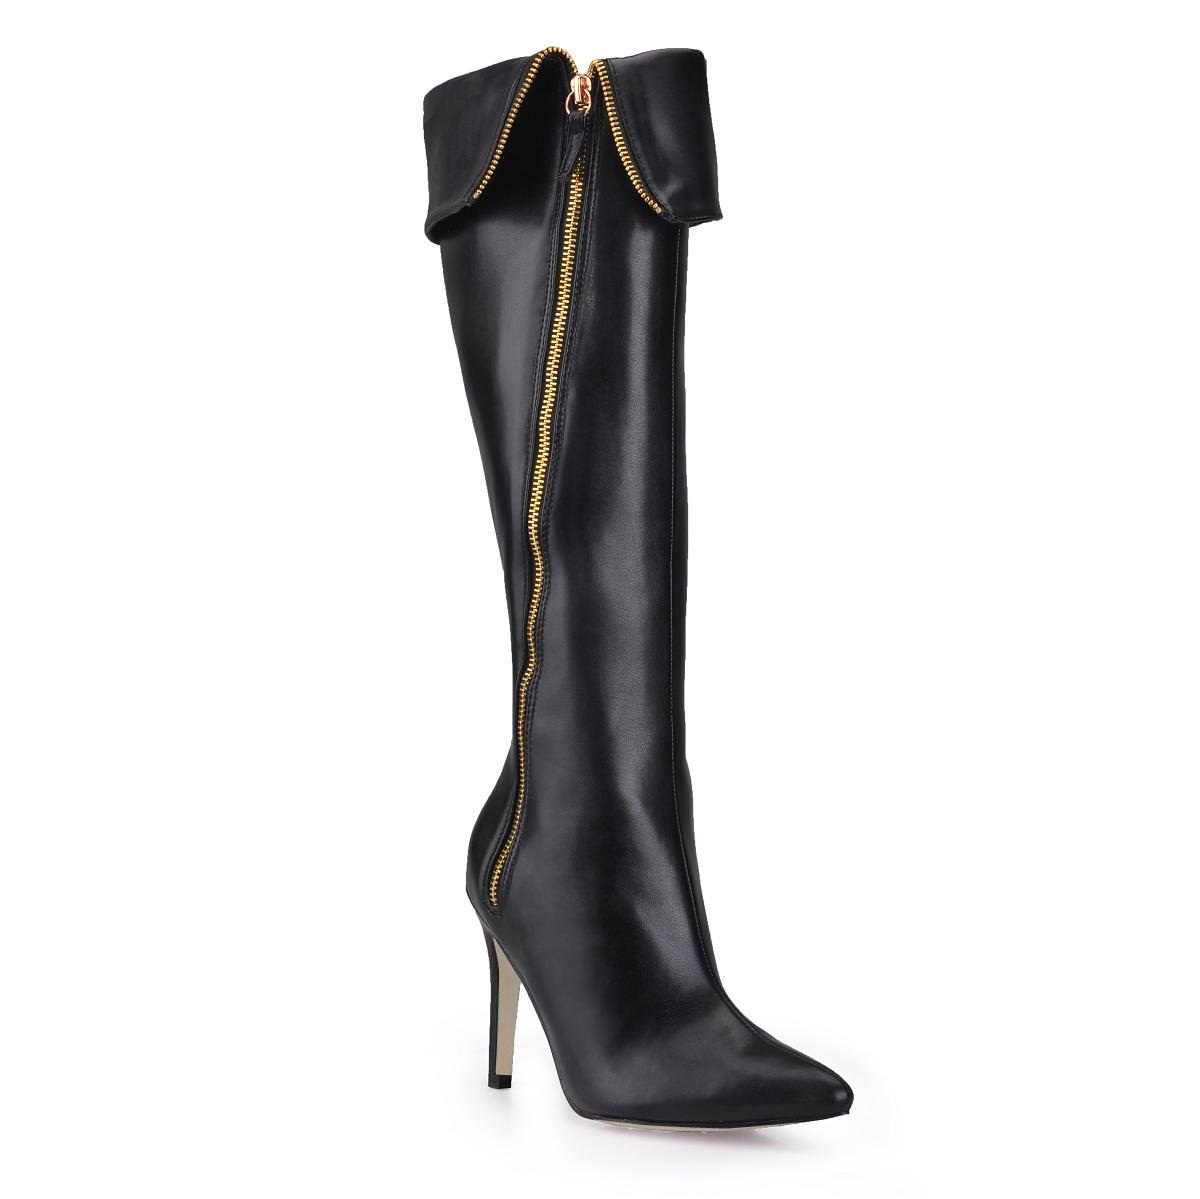 stiletto heel boots fashionate trends